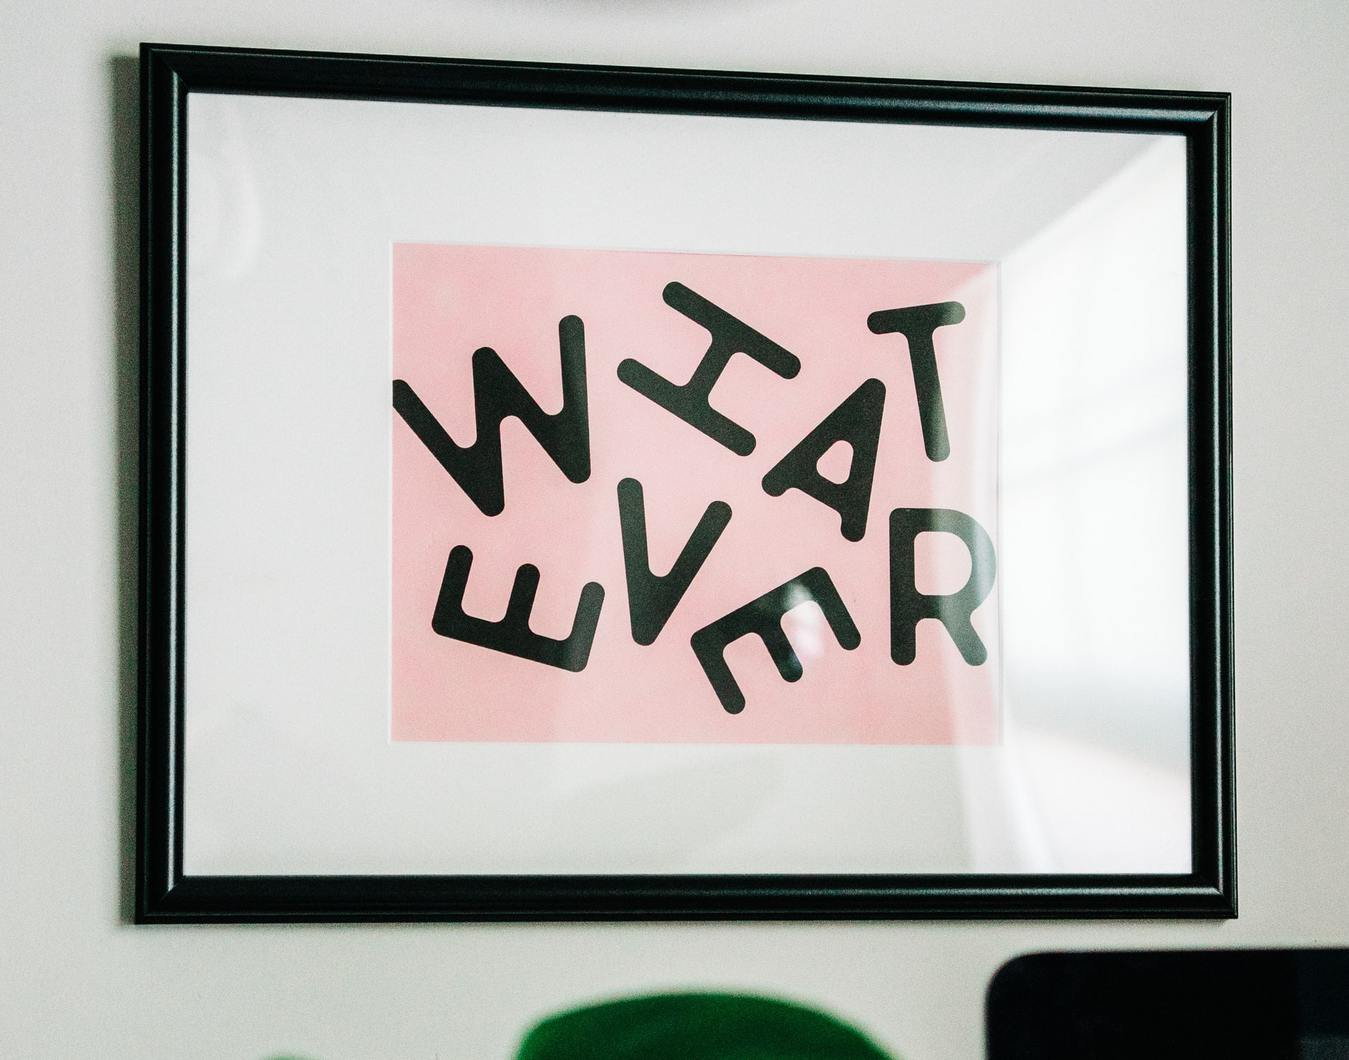 Whatever Print on Pink Background Framed on Wall